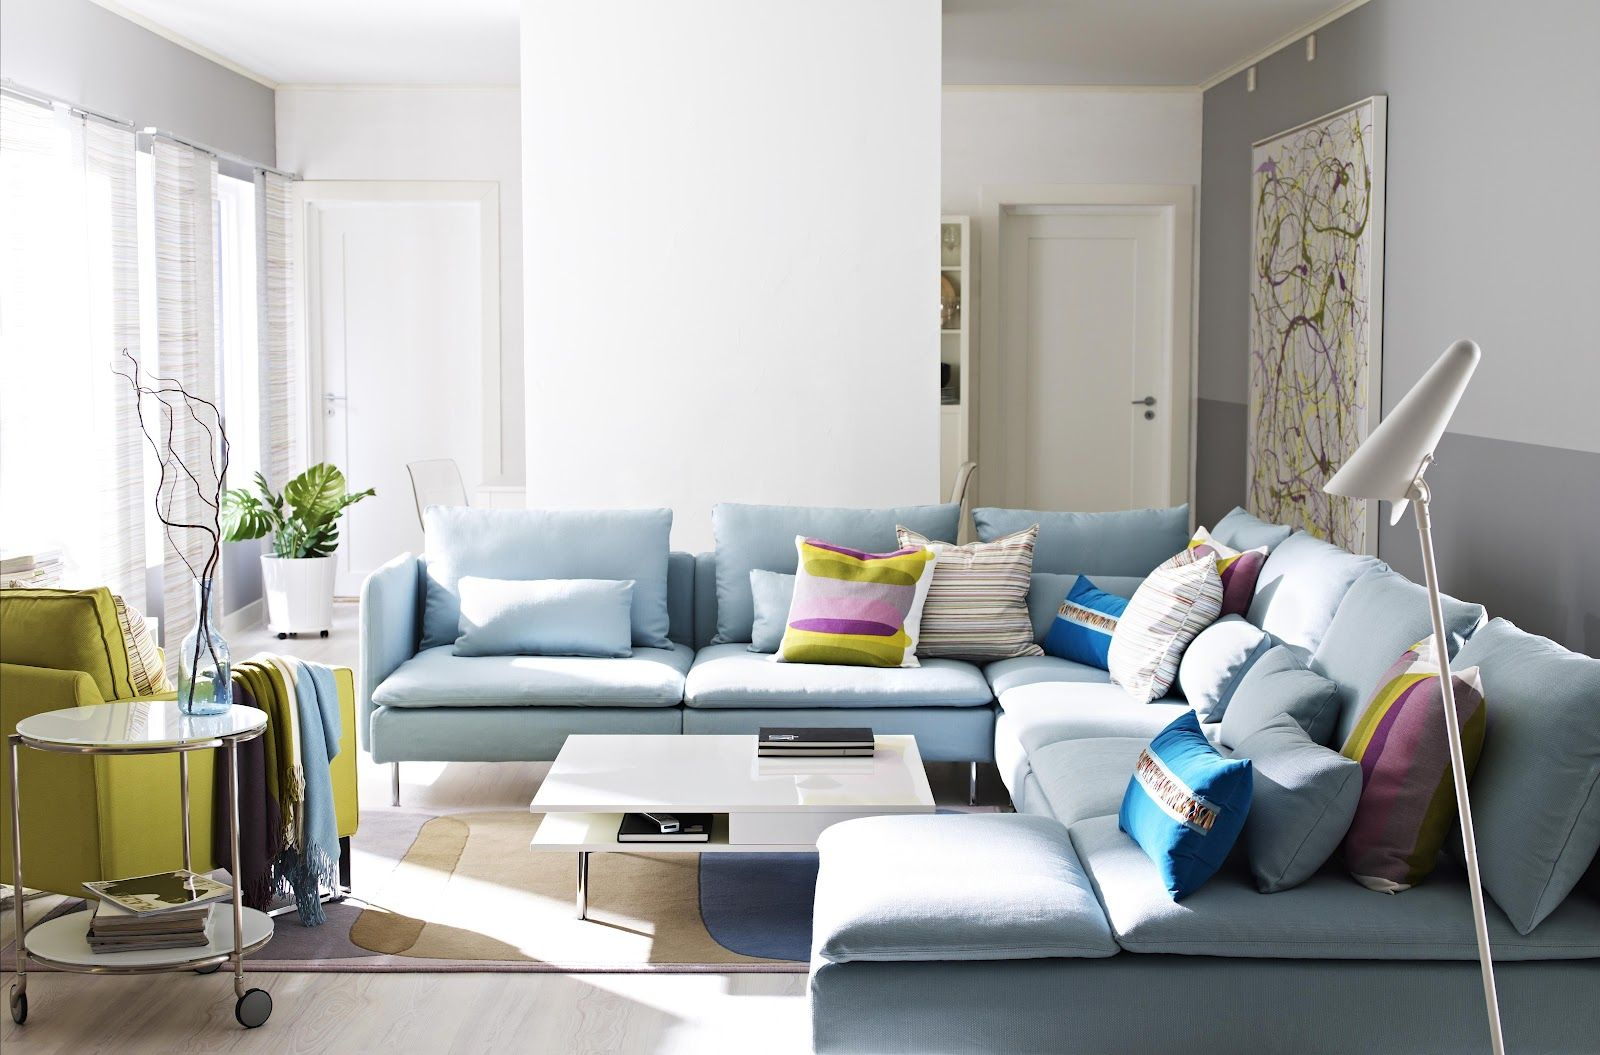 Http Www Skimbacolifestyle Com Wp Content Uploads 2012 08 Ikea 2013 Couch Jpg Contemporary Living Room Furniture Living Room Furniture Ikea Interior